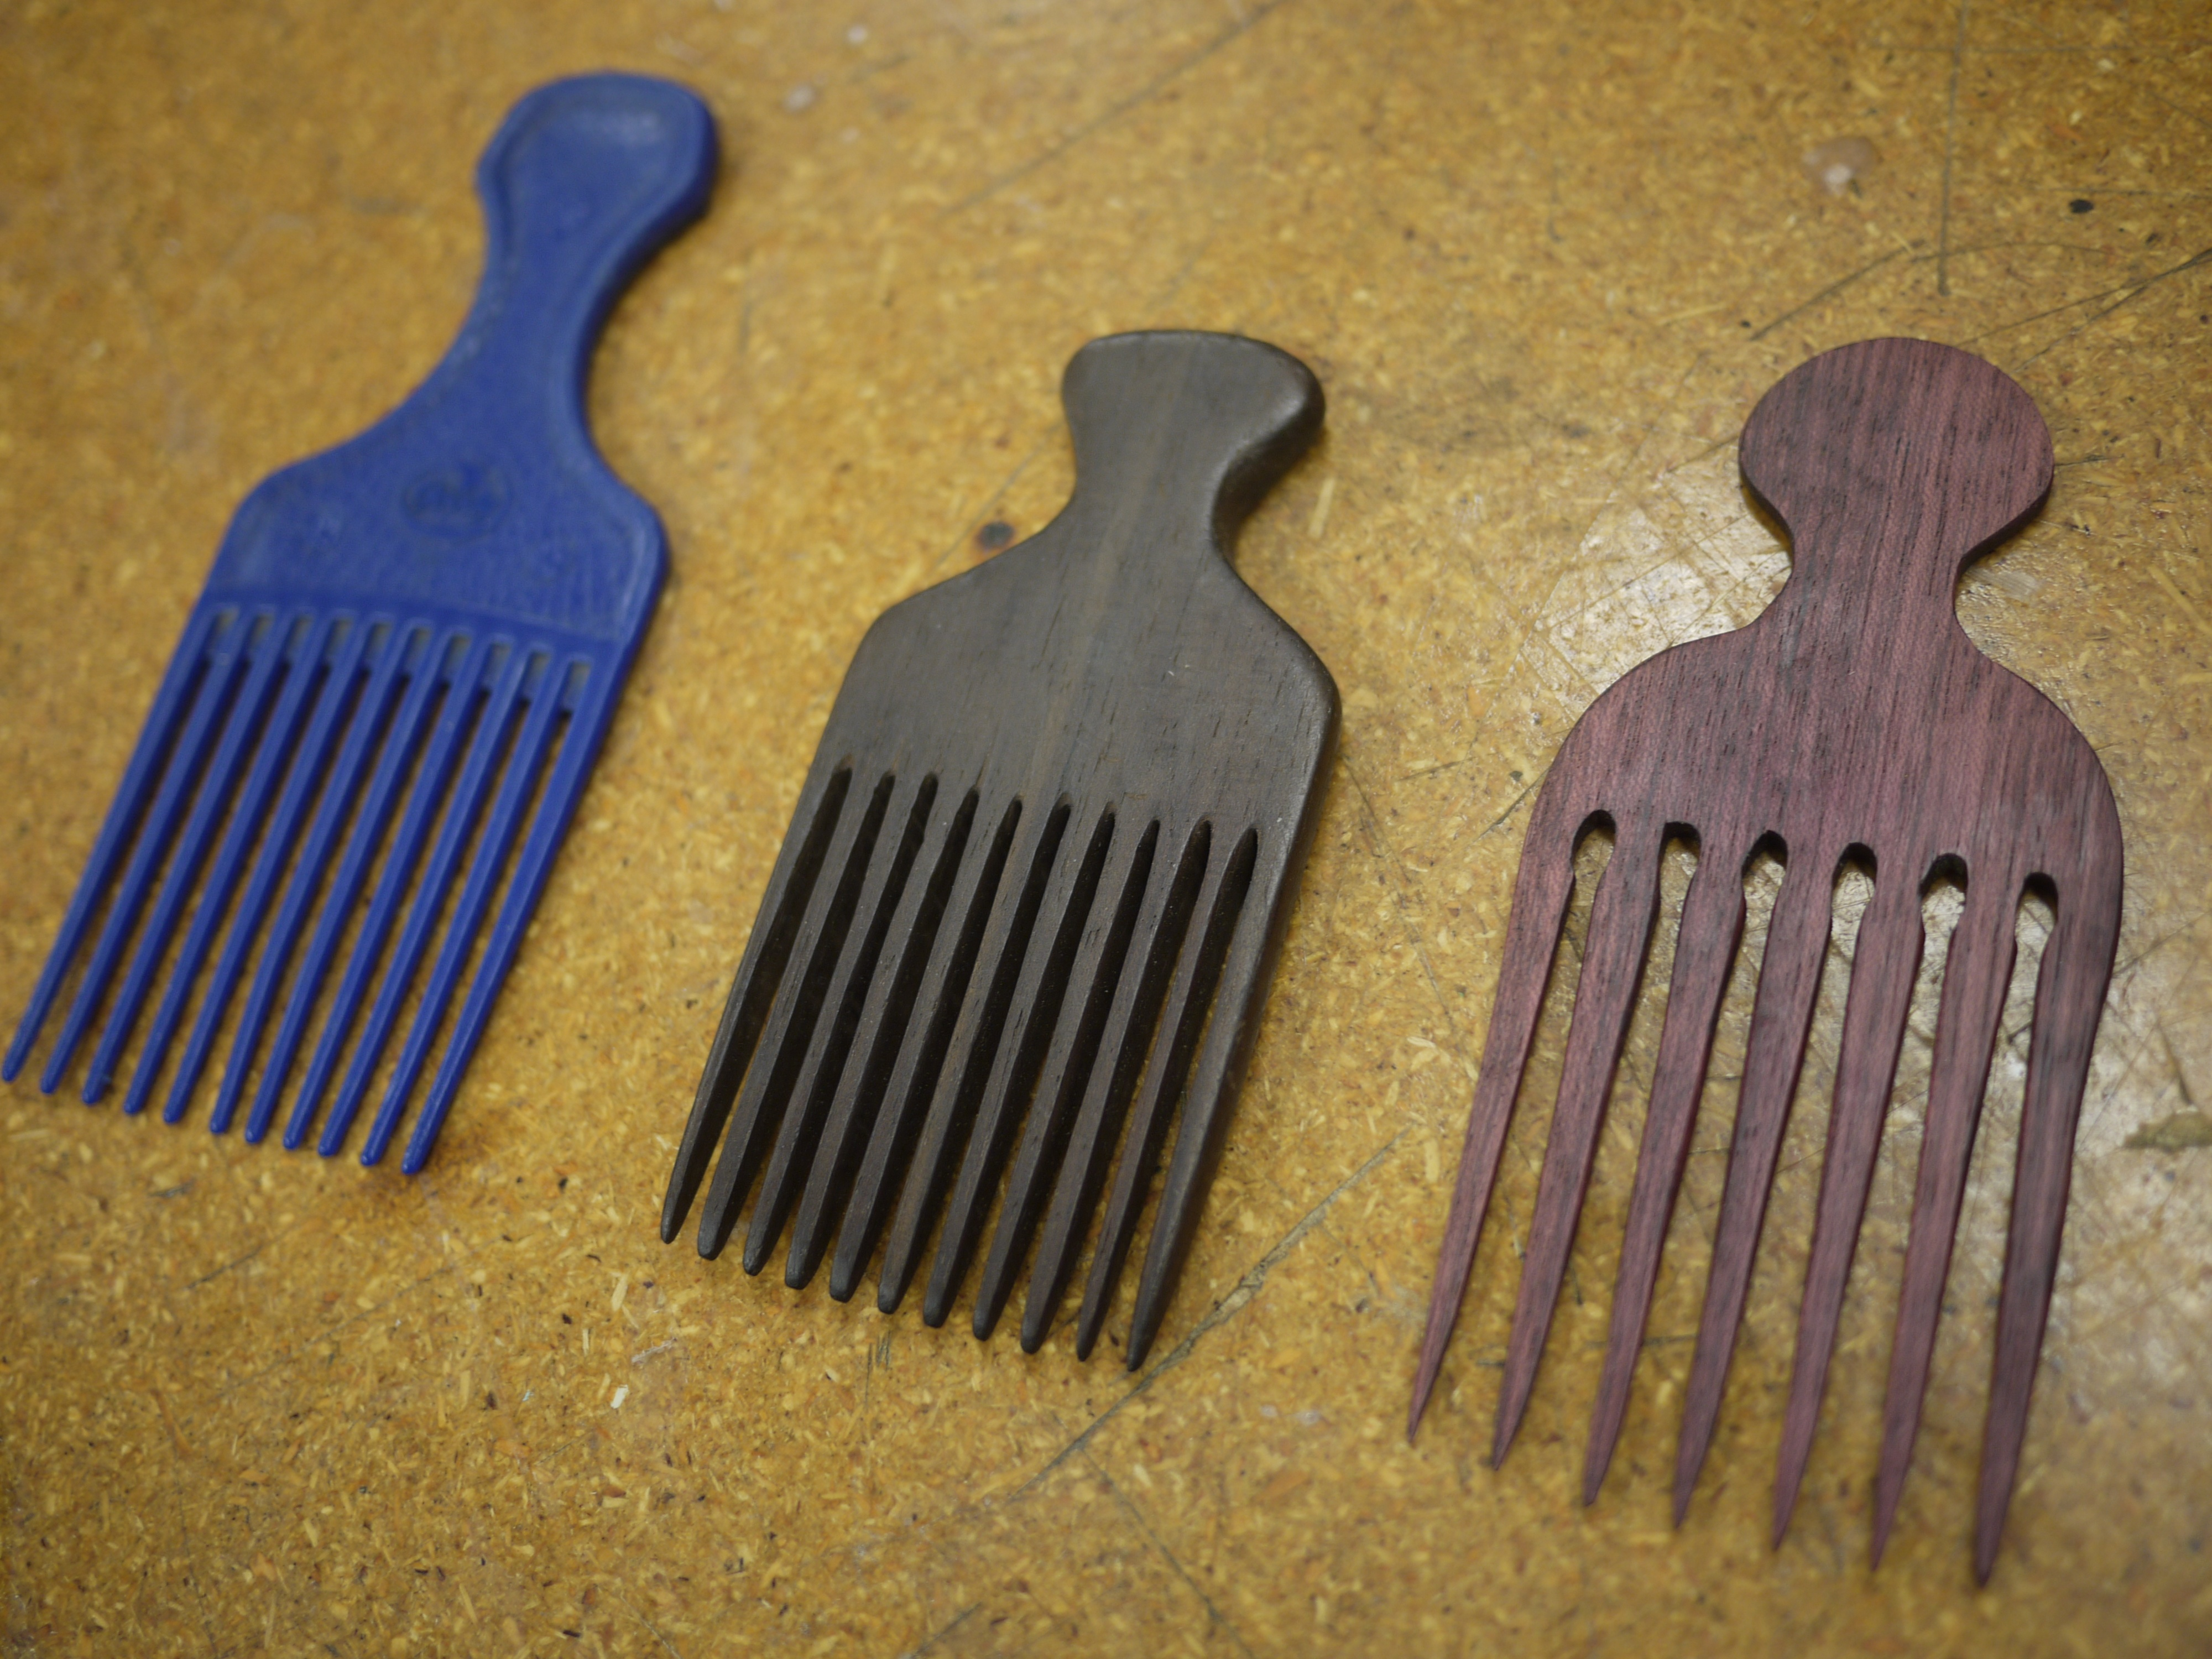 Picture of Hardwood Hair Combs on the Scroll Saw - Made at Techshop